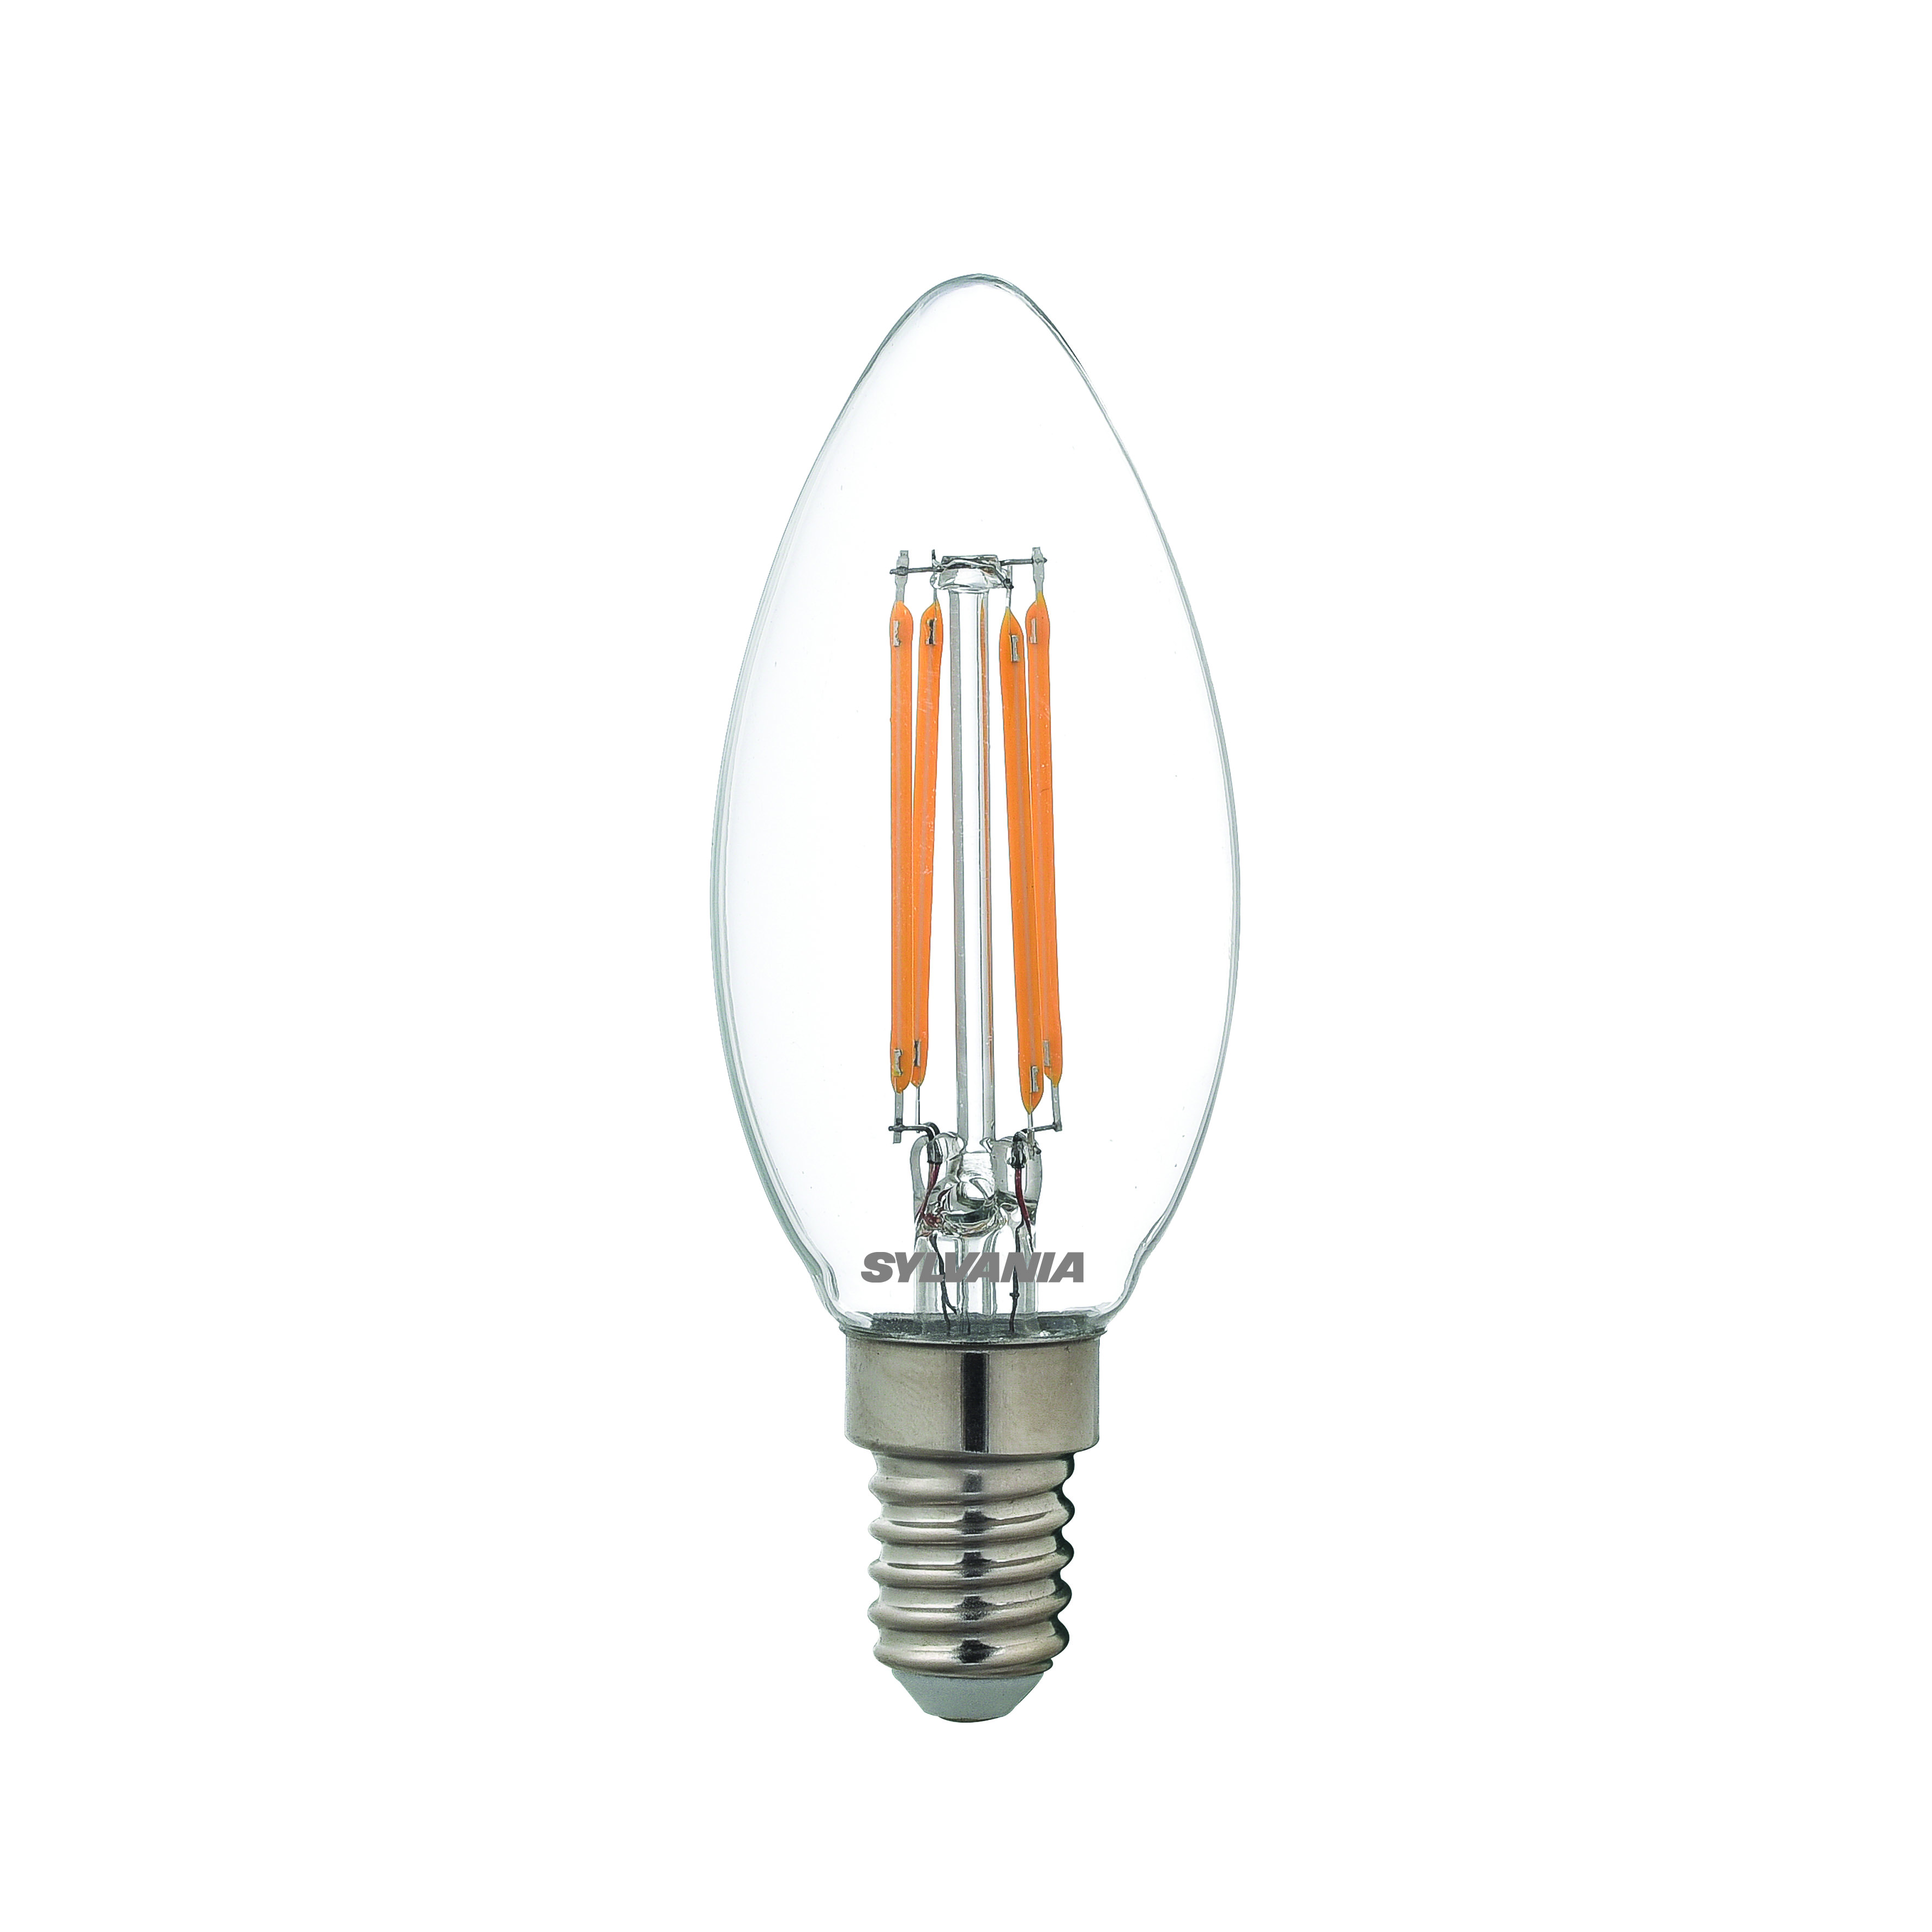 Sylvania dimmable LED candle light bulb E14 SES 4.5W = 40W 470lm warm white Thumbnail 1